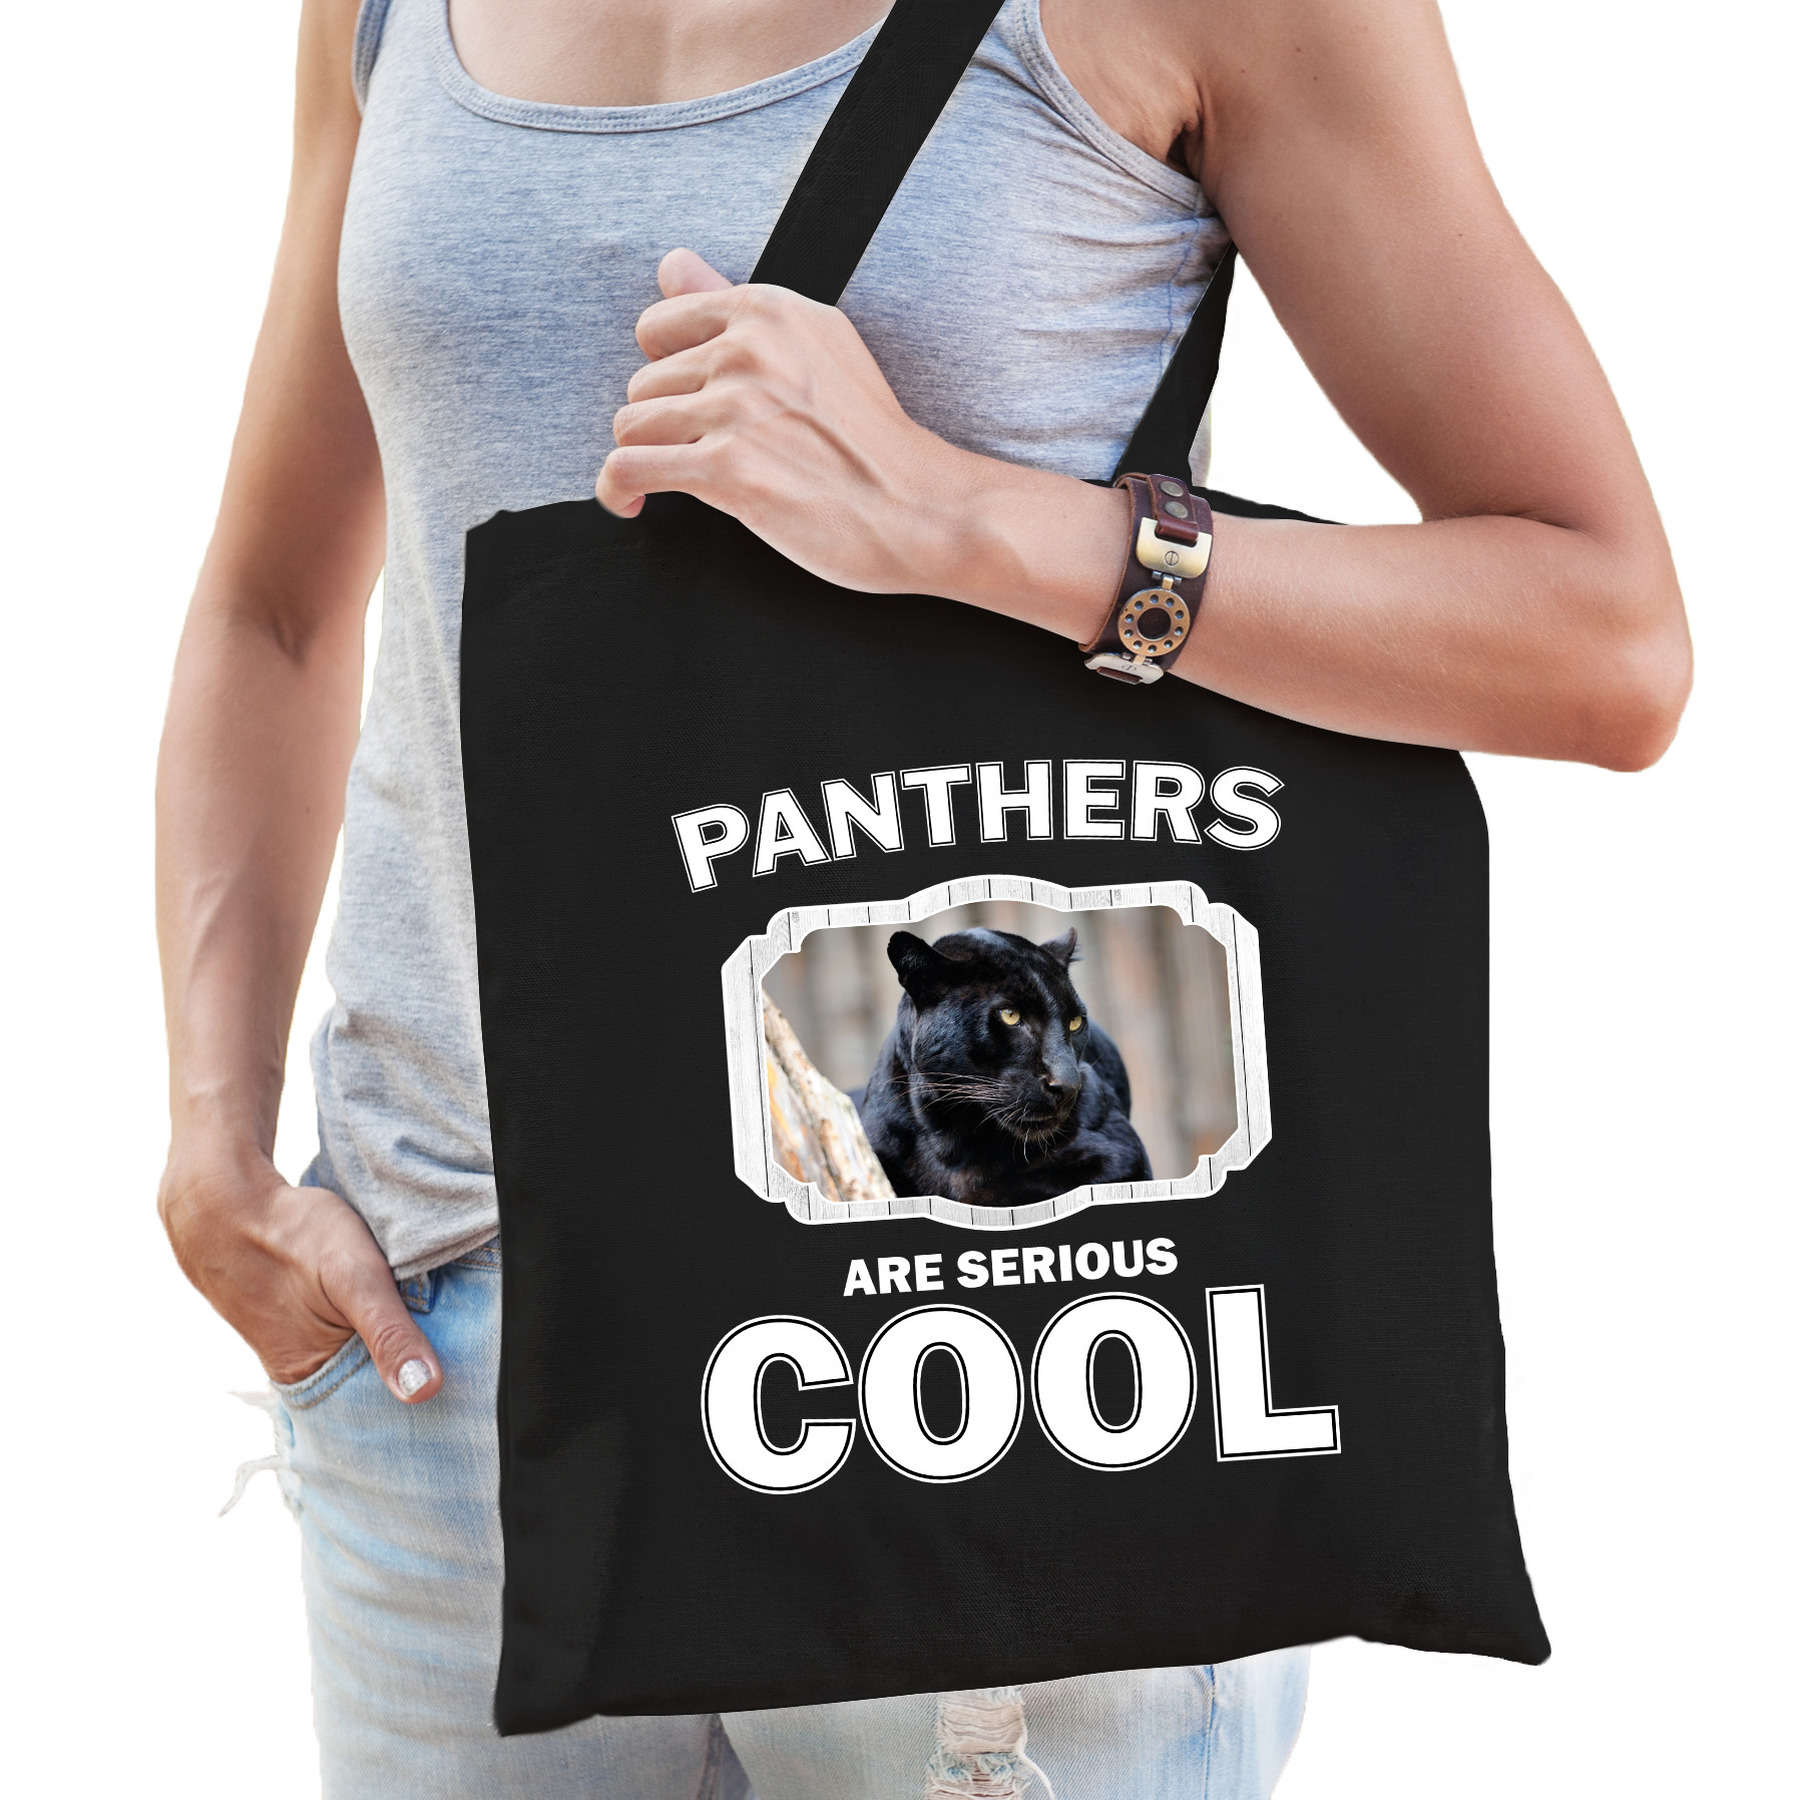 Katoenen tasje panthers are serious cool zwart - panters/ zwarte panter cadeau tas